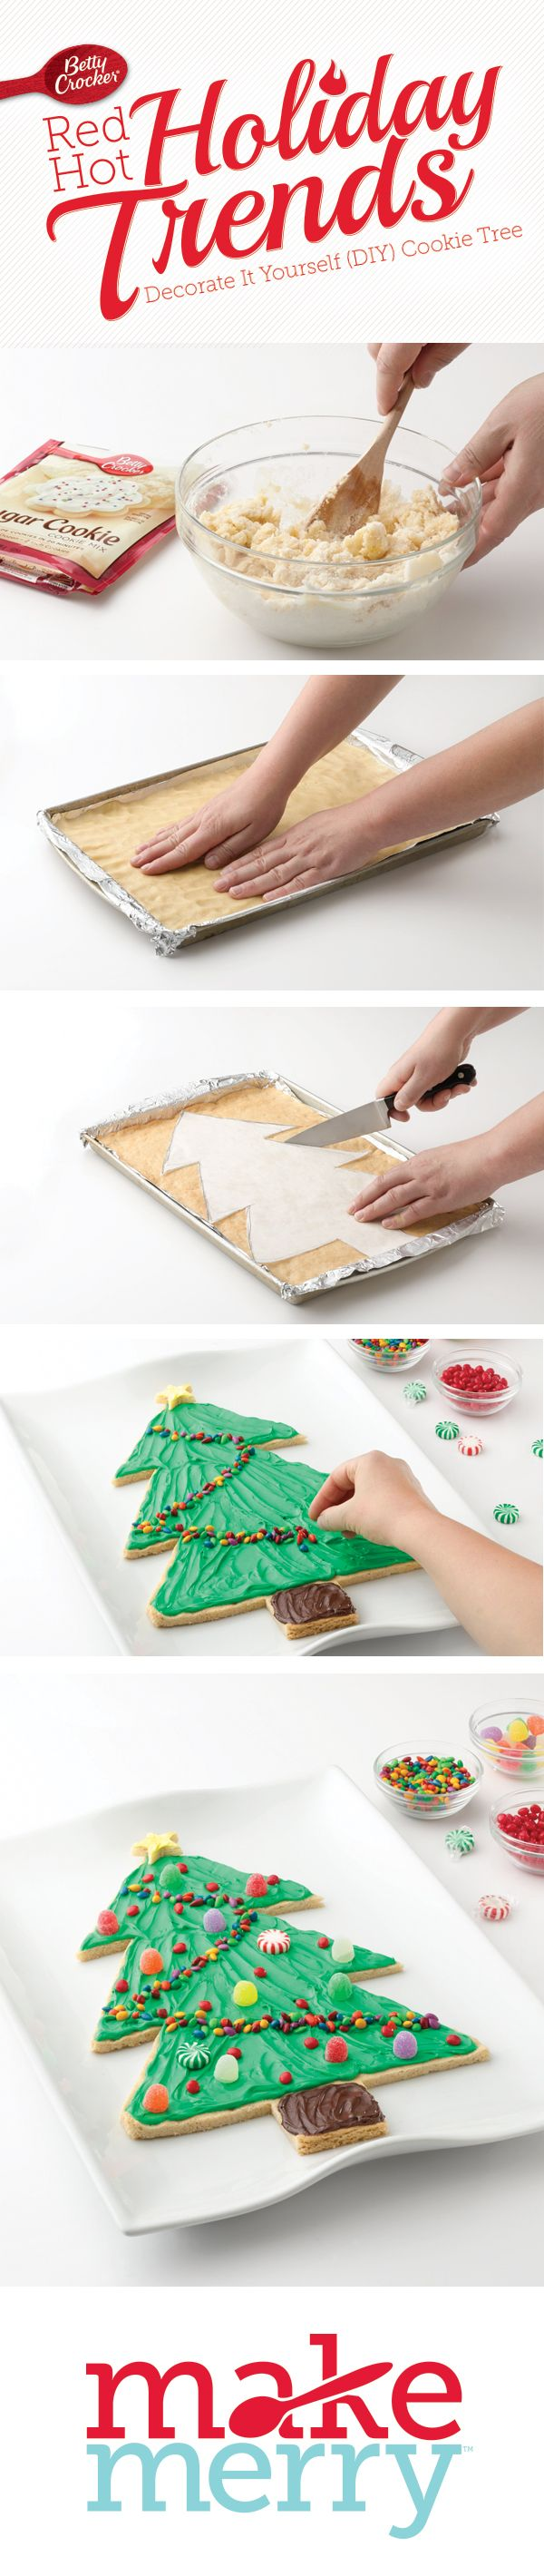 Red Hot Holiday Trend: DIY Cookie Tree How-To #MakeMerry